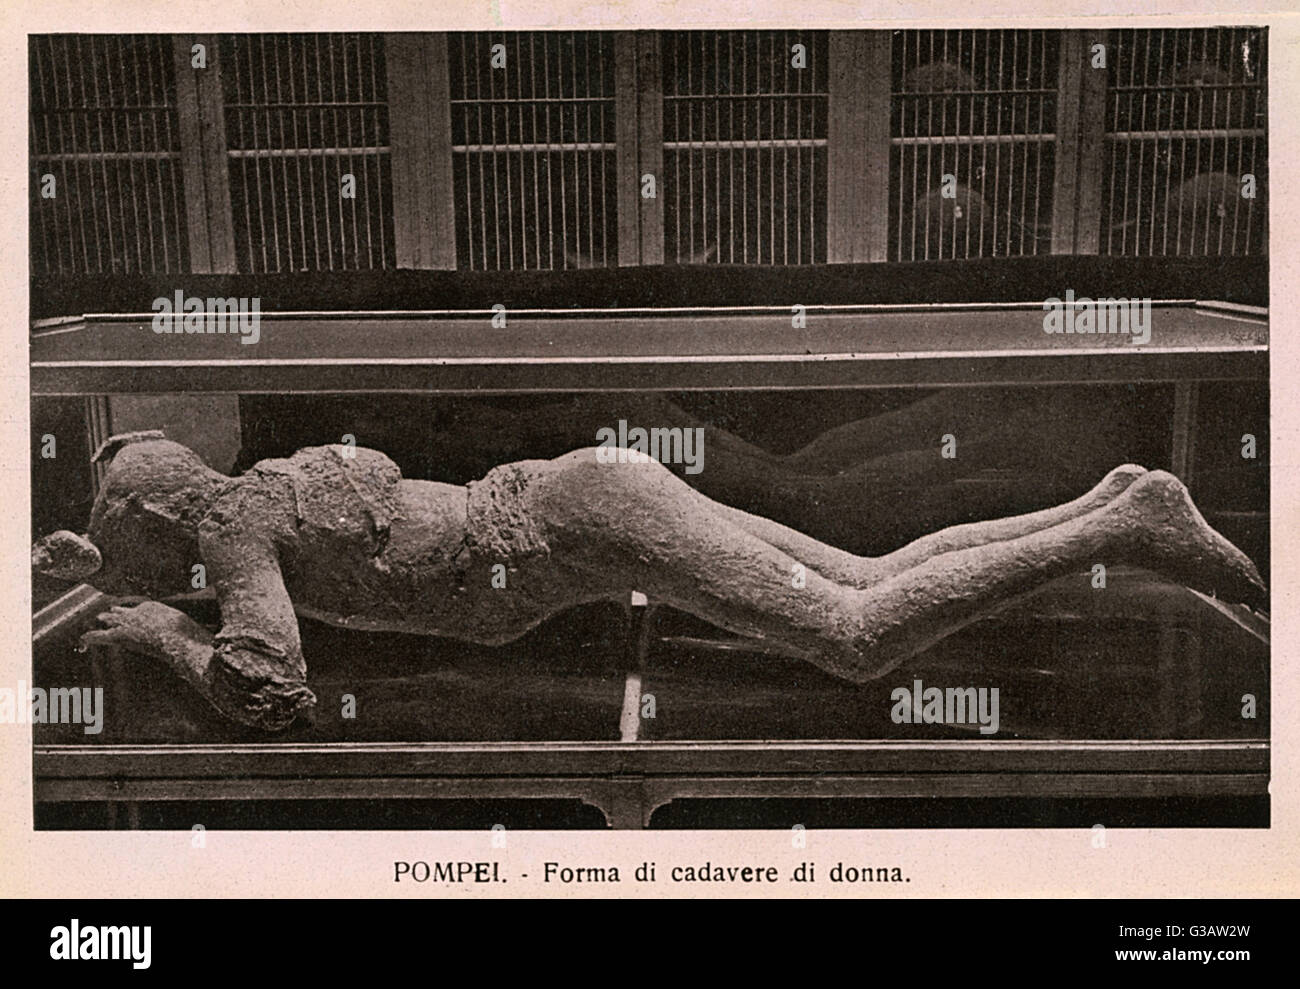 Pompeii - Italy - Body of a Woman - perfectly preserved in the volcanic ash.     Date: circa 1910s - Stock Image